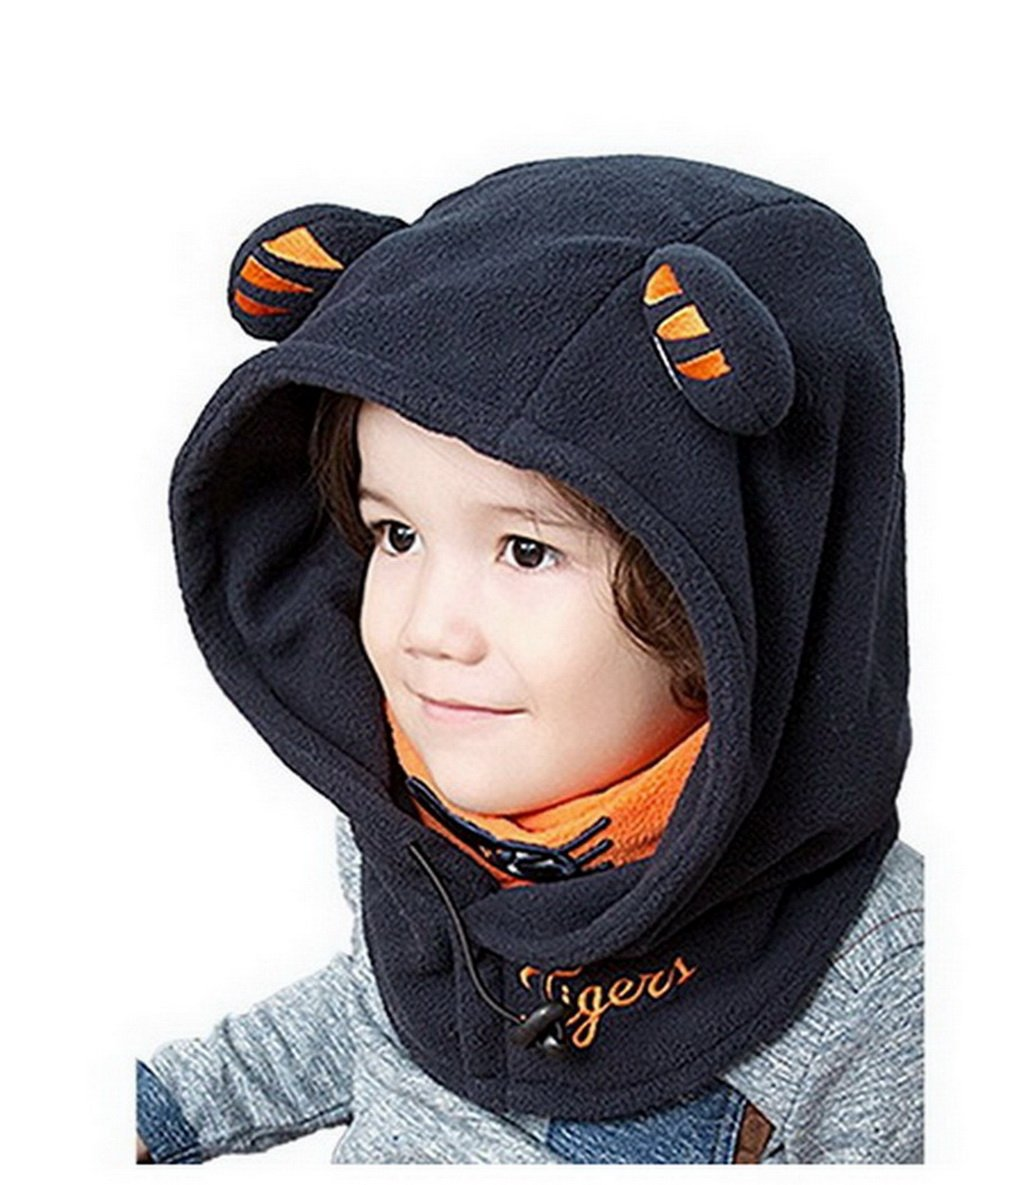 Bigood Children's Winter Thick Warm Windproof Cap Adjustable Face Cover Ski Hat 6HAT203C*1$A1